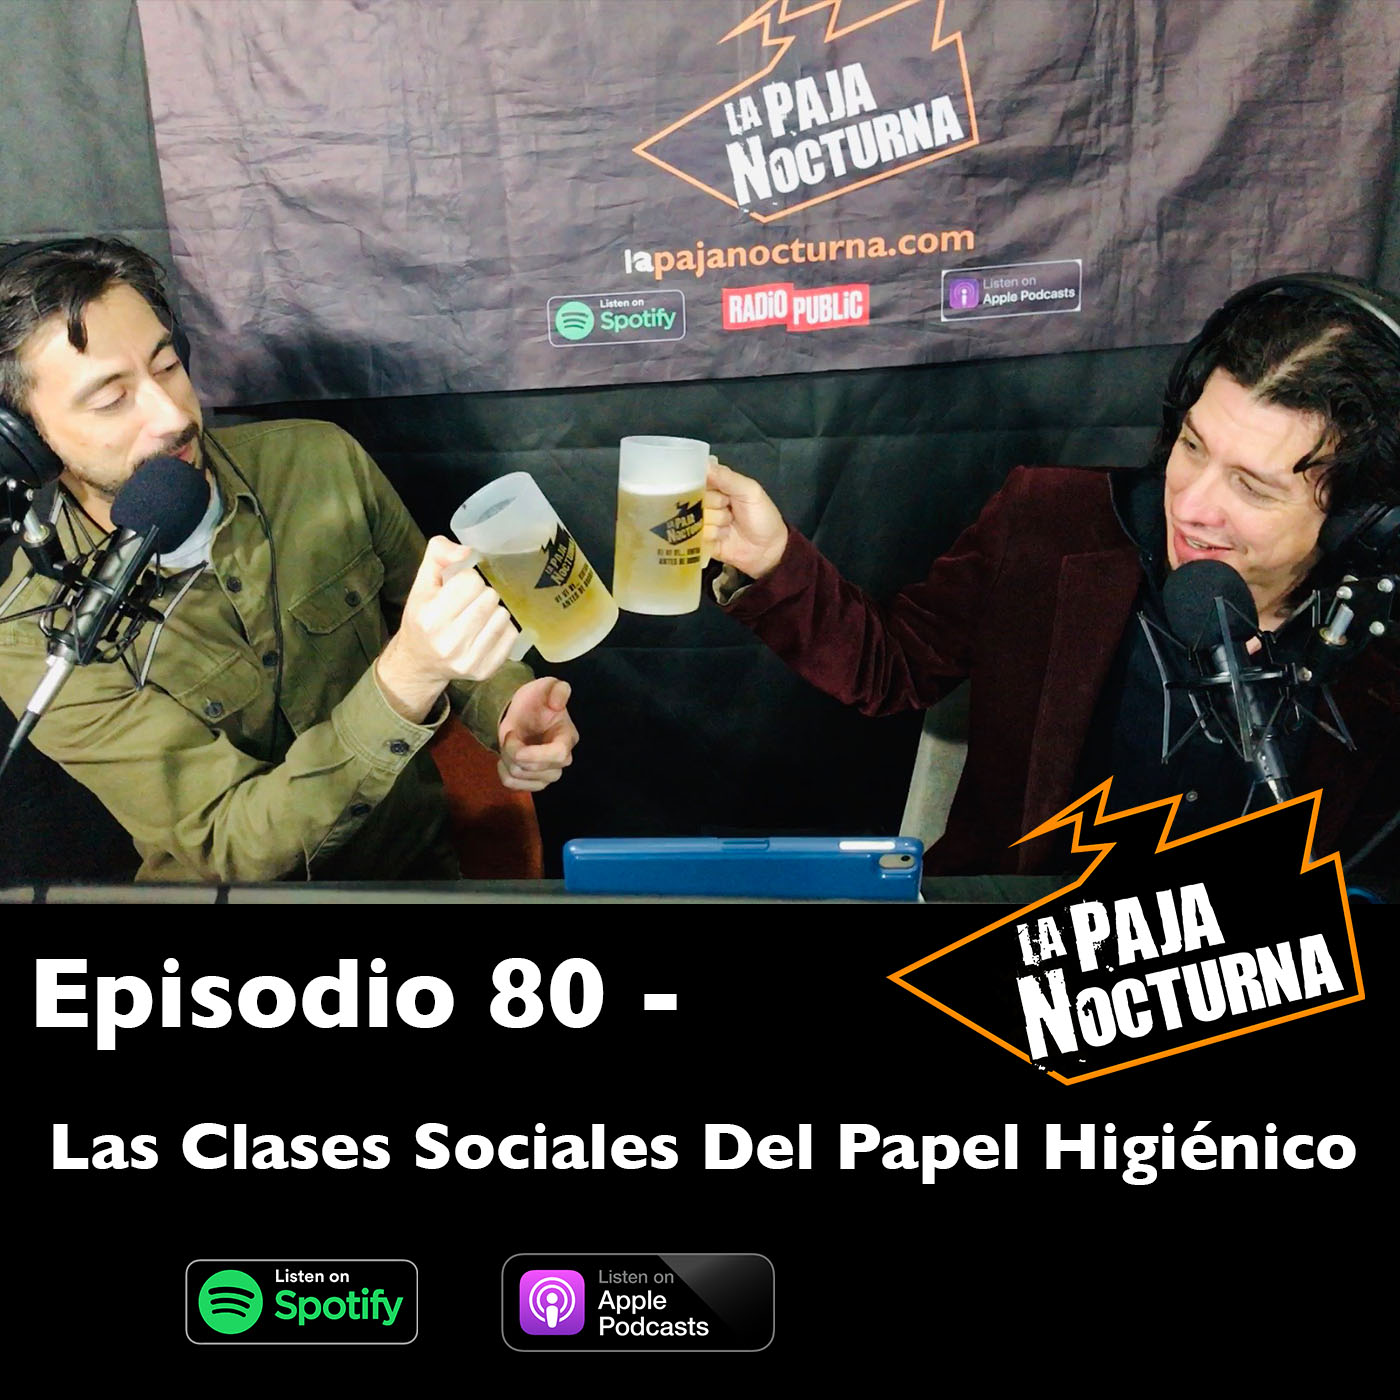 La paja nocturna podcast Episodio 80